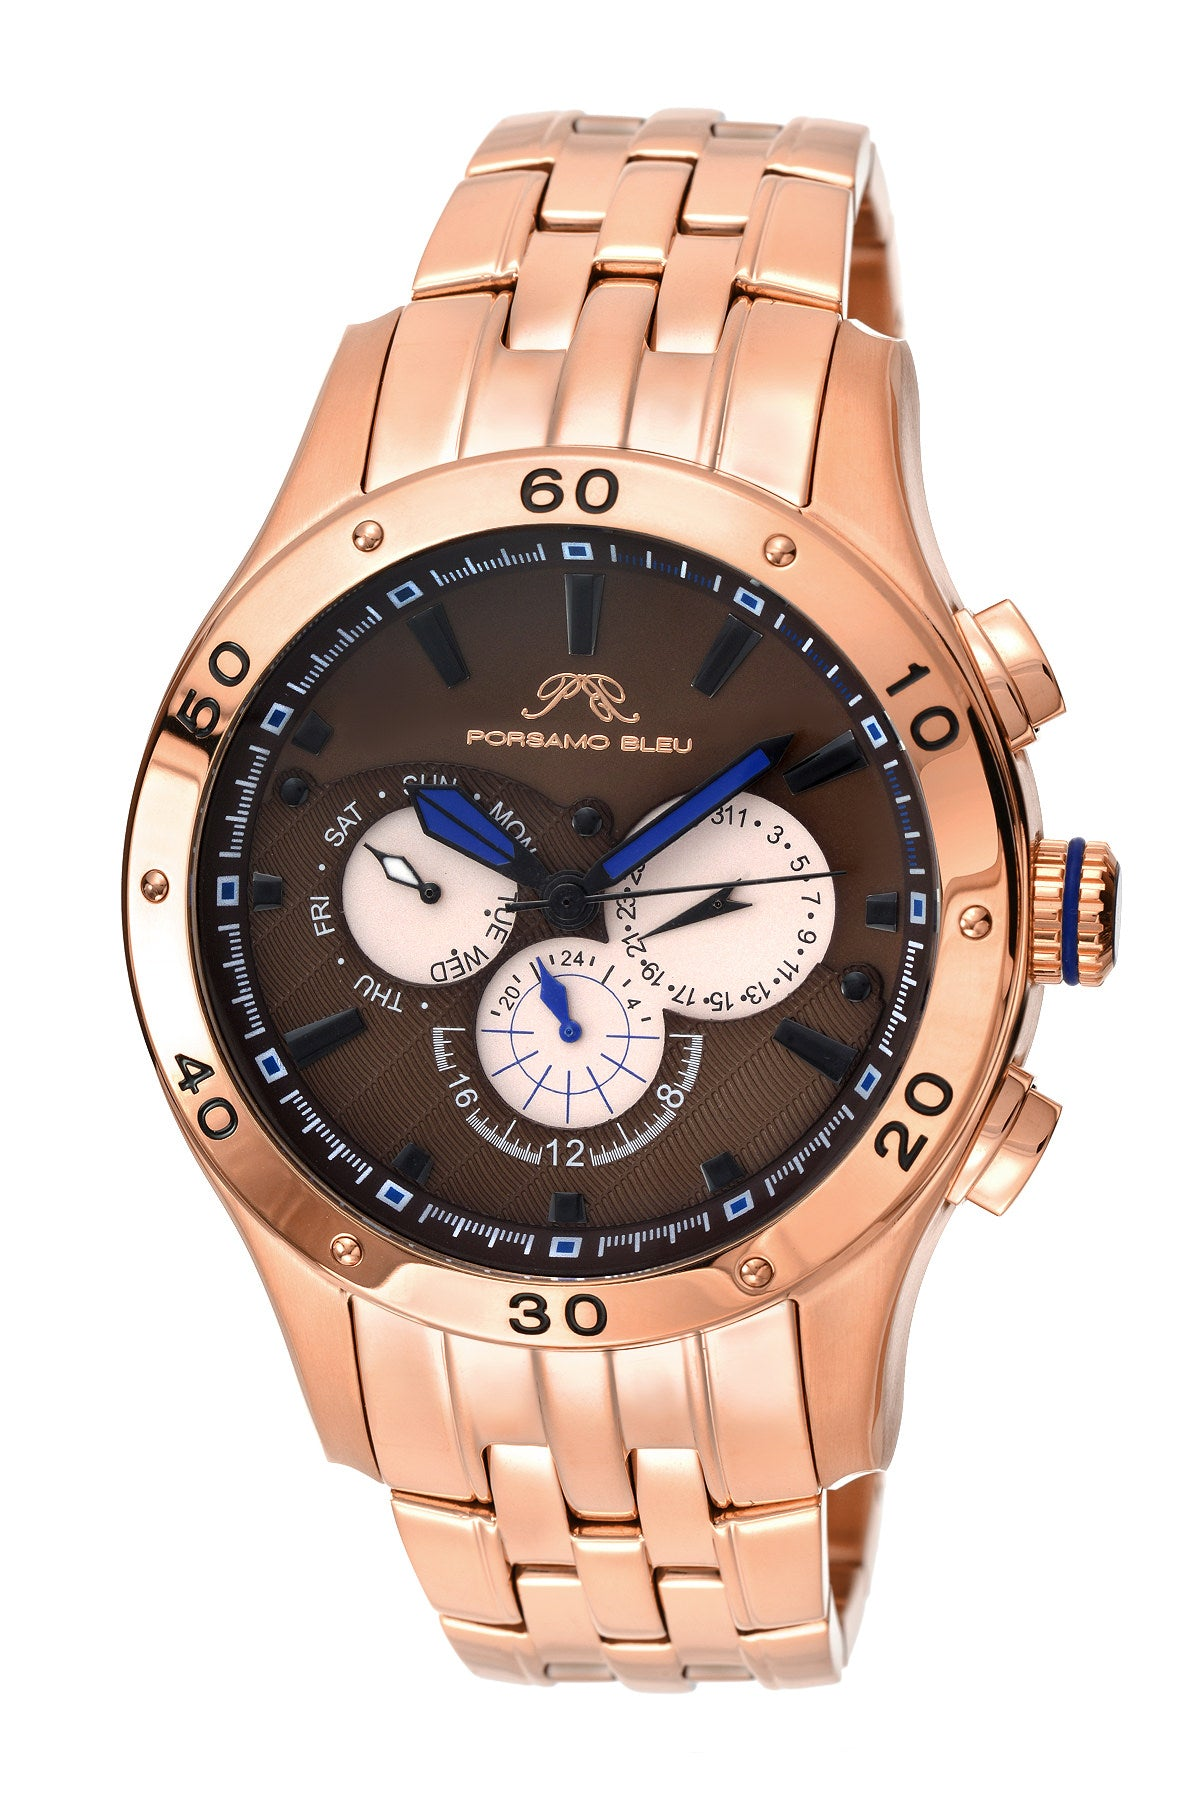 Porsamo Bleu, re luxury men's stainless steel watch, rose, brown 221CANS